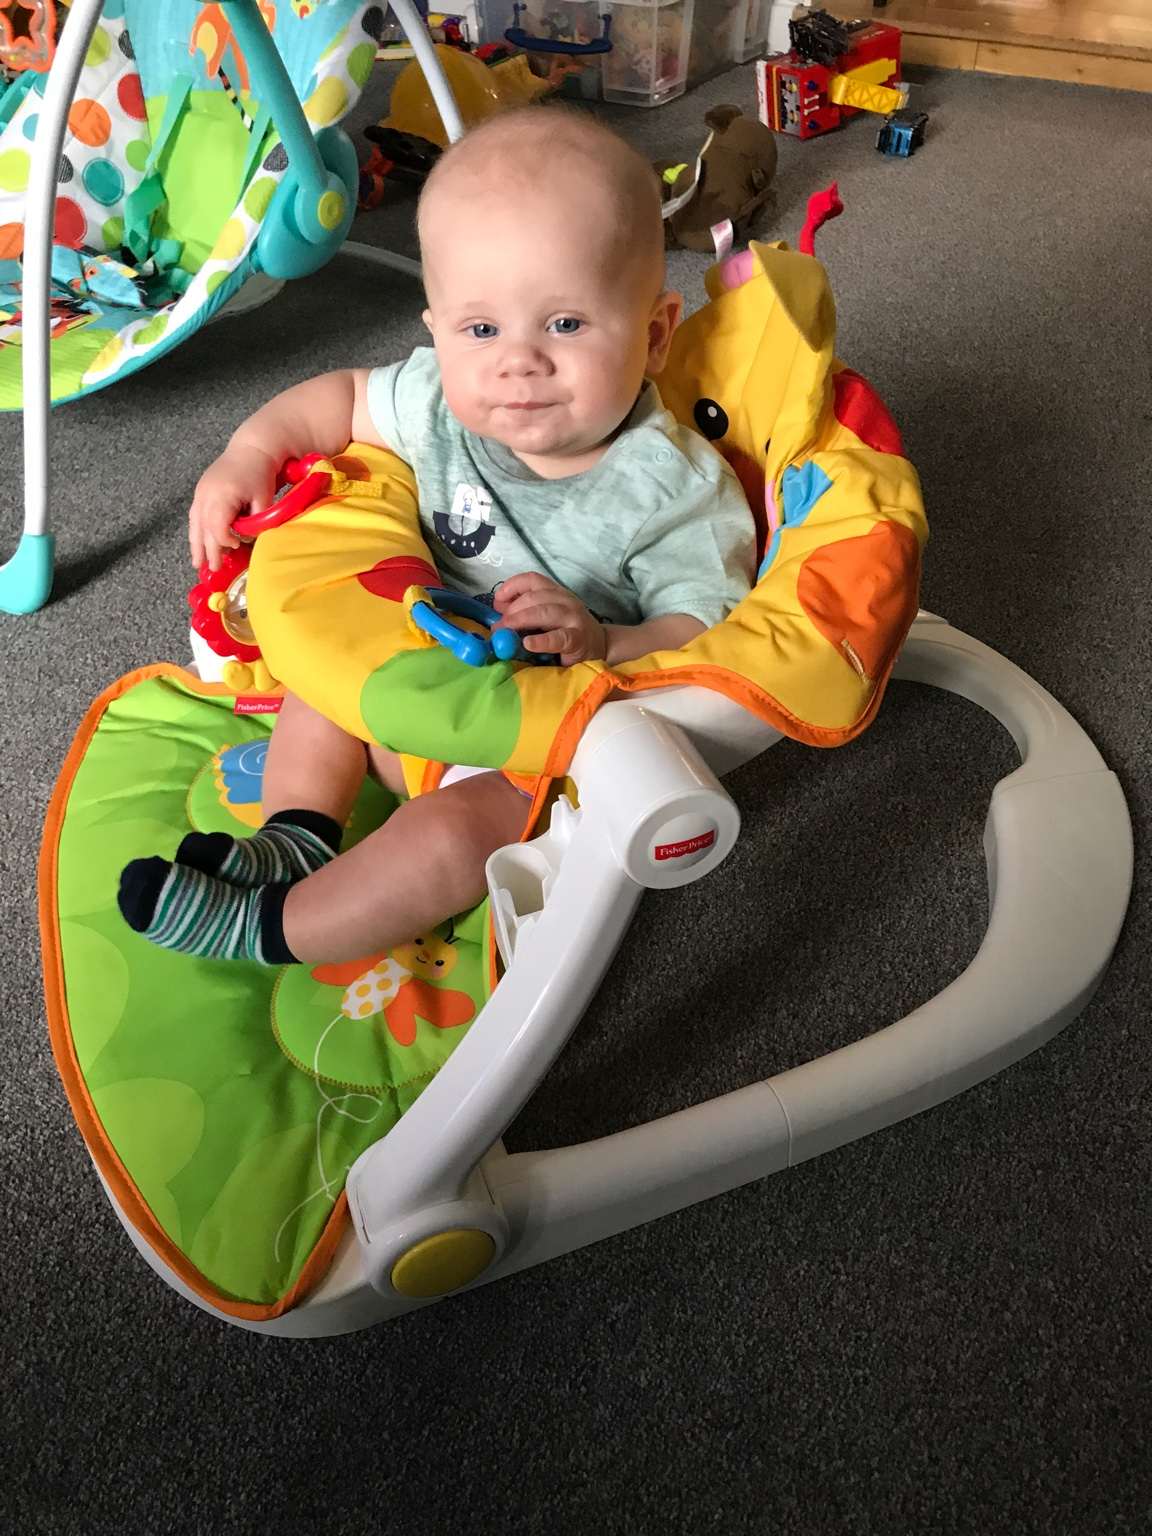 I Recommend The Giraffe Seat Too My Son Loves It We Bought When He Was Around 3 Months Got From Argos Not Sure On Price